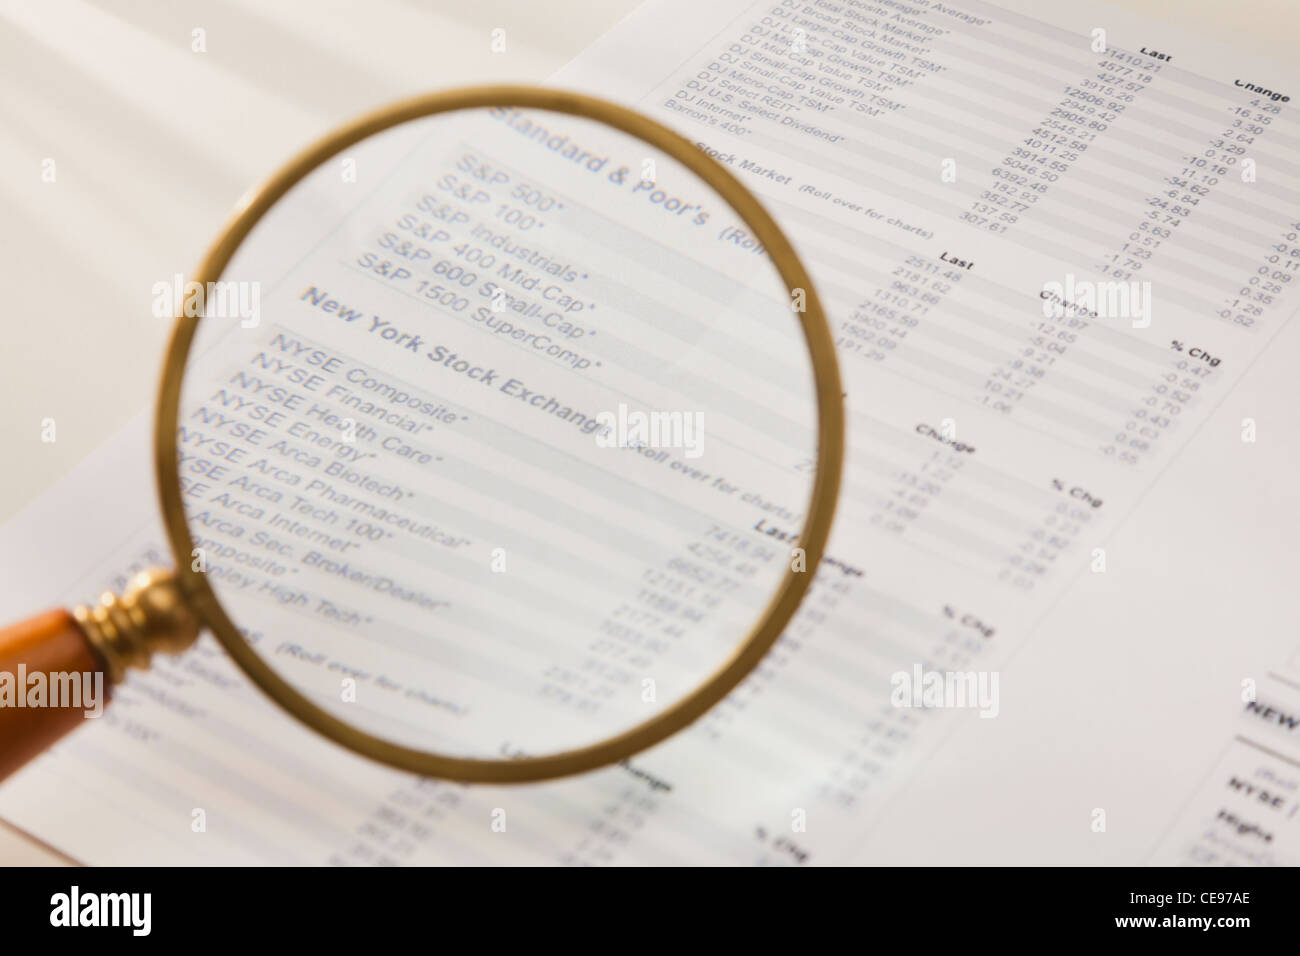 Studio shot of magnifying glass over financial pages - Stock Image